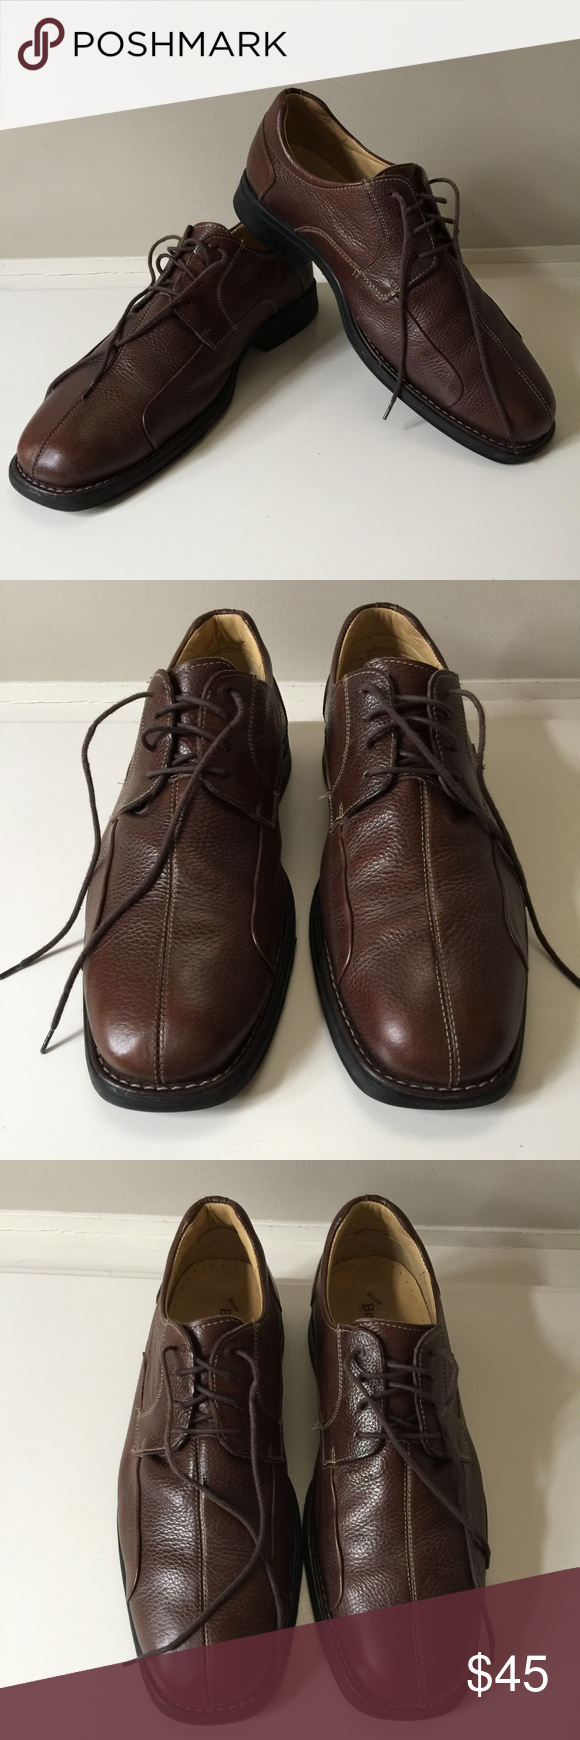 7db35342fe Belvedere Bay Bridge Brown Leather Shoes 12EEE Mens Belevedere Studio Bay  Bridge Brown Pebbled Leather Lace Up Shoes Size 12EEE Made in Brazil Very  good ...